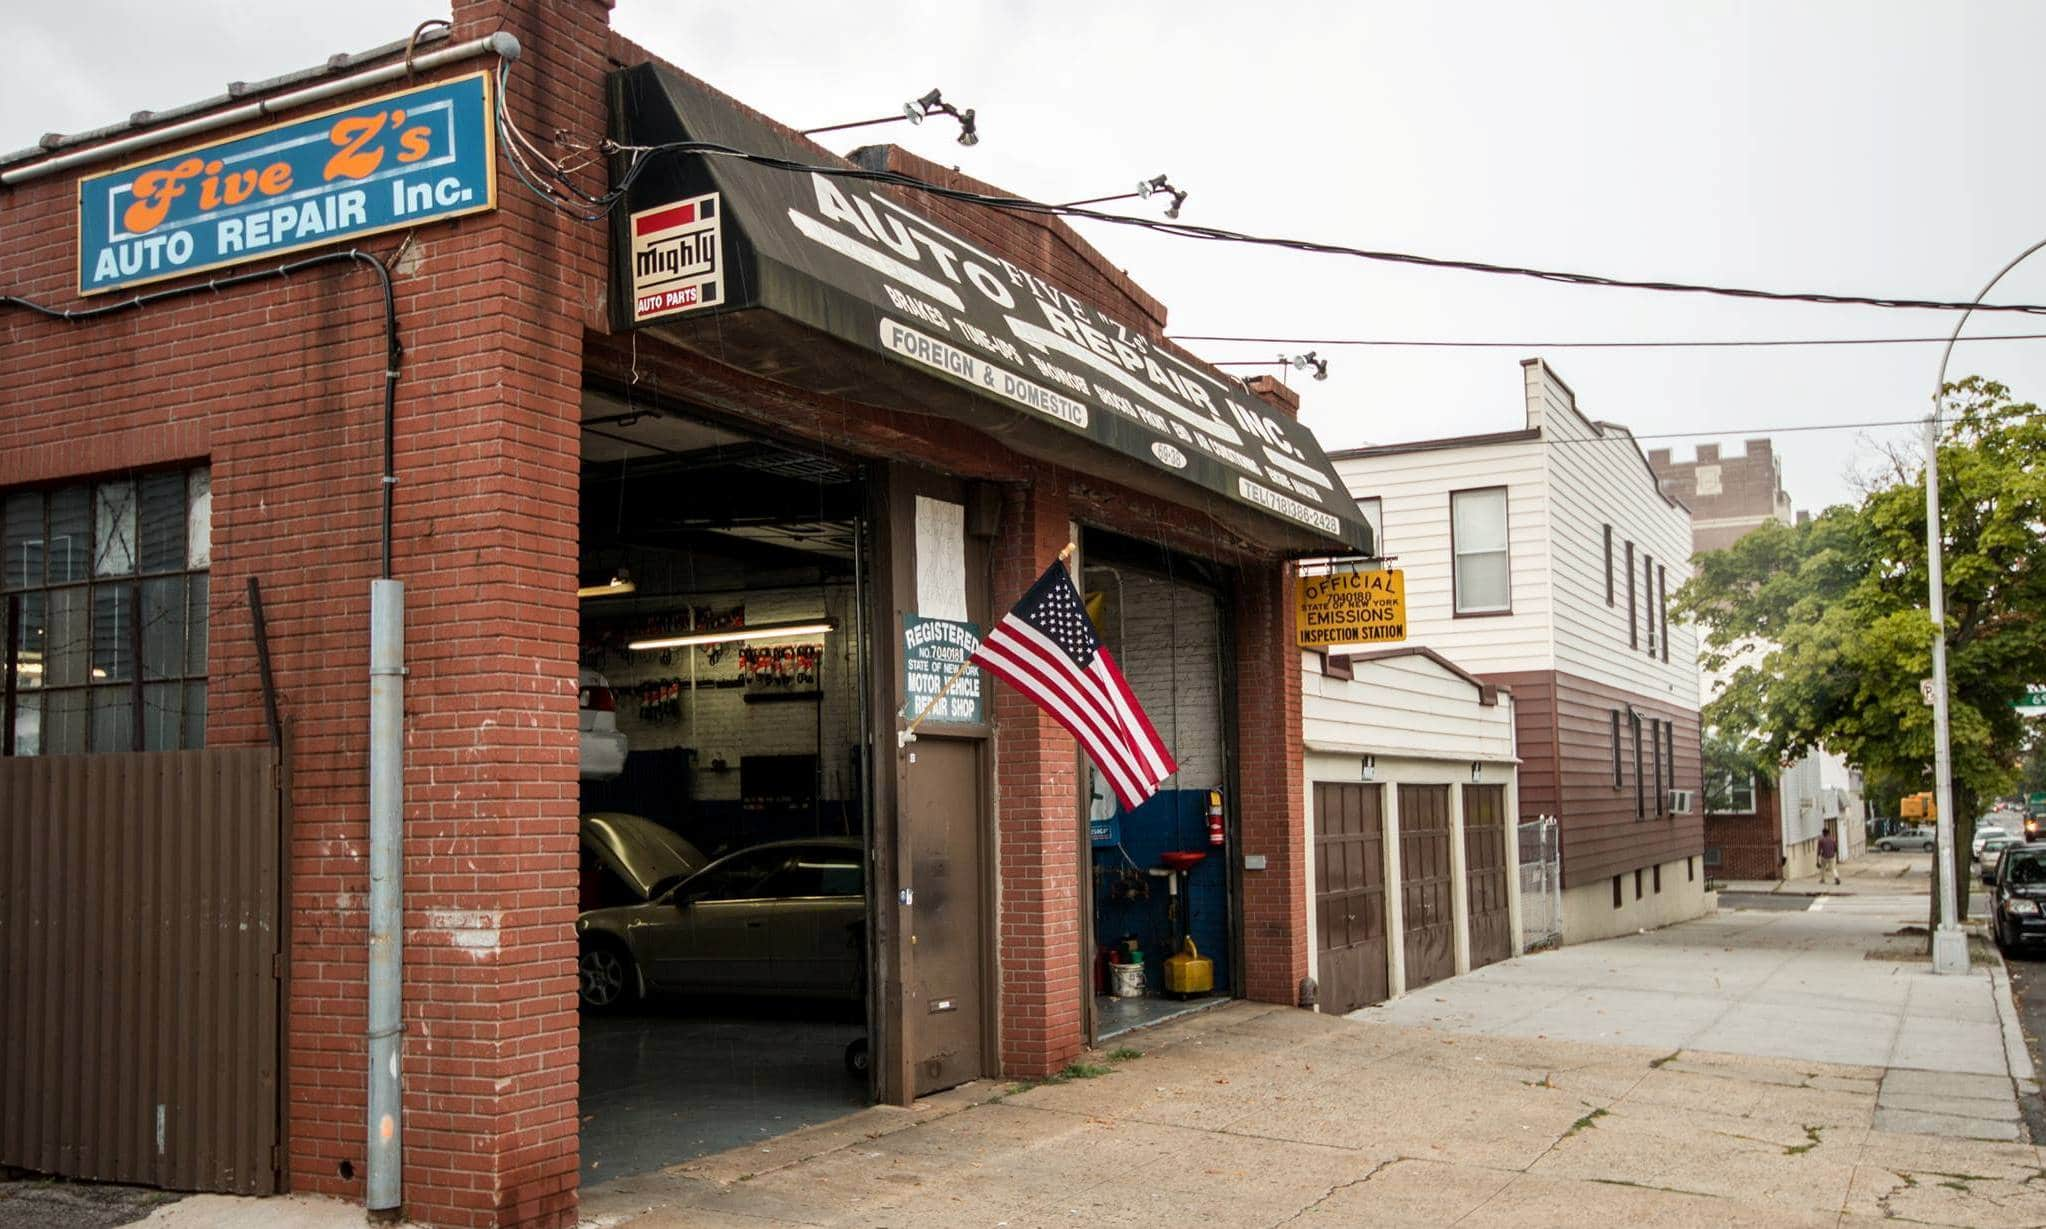 Five Zs Auto Repair Inc Glendale NY